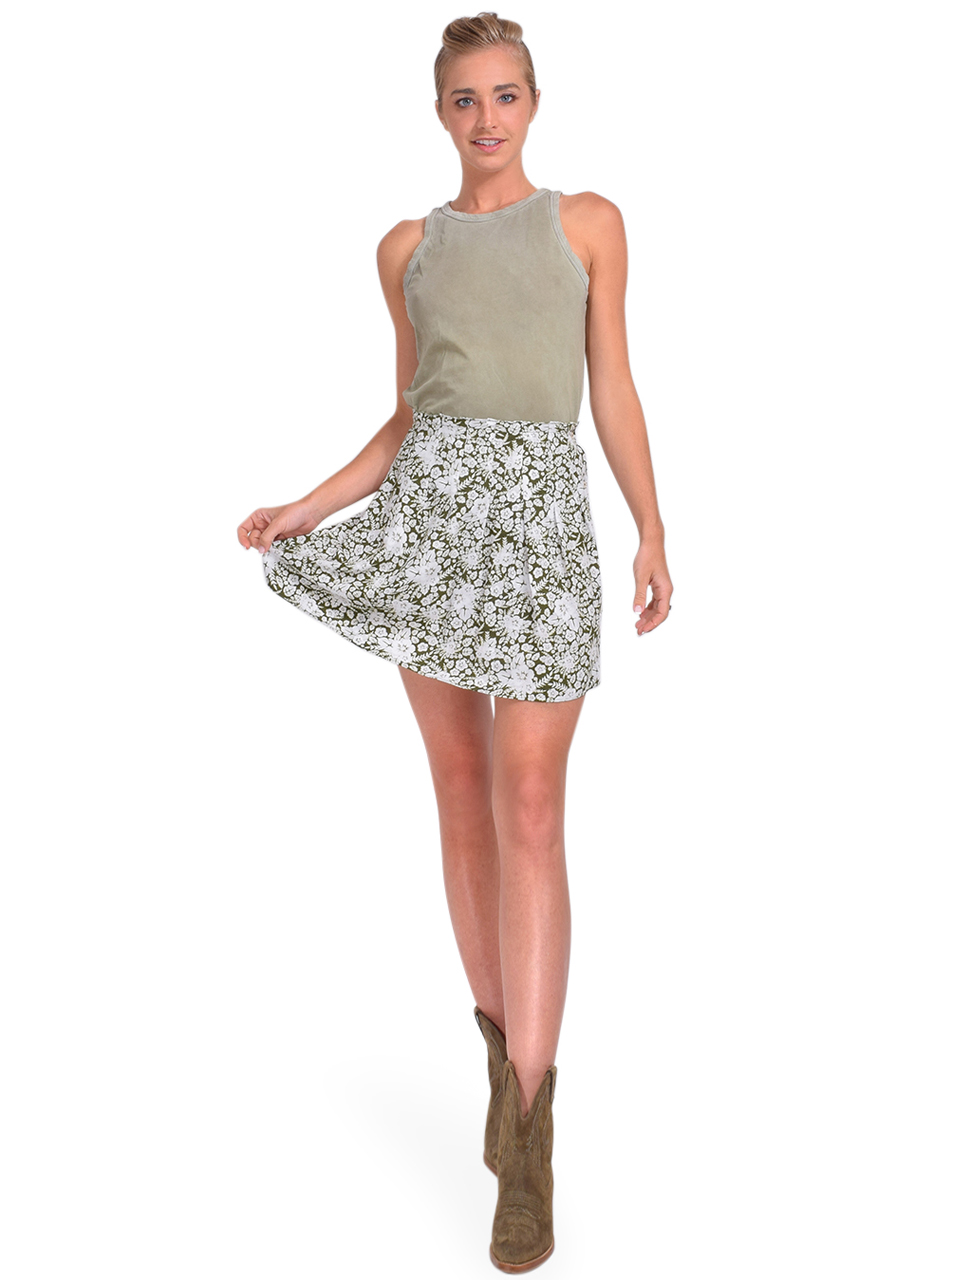 Cotton Citizen Standard Tank in Vintage Basil Full Outfit